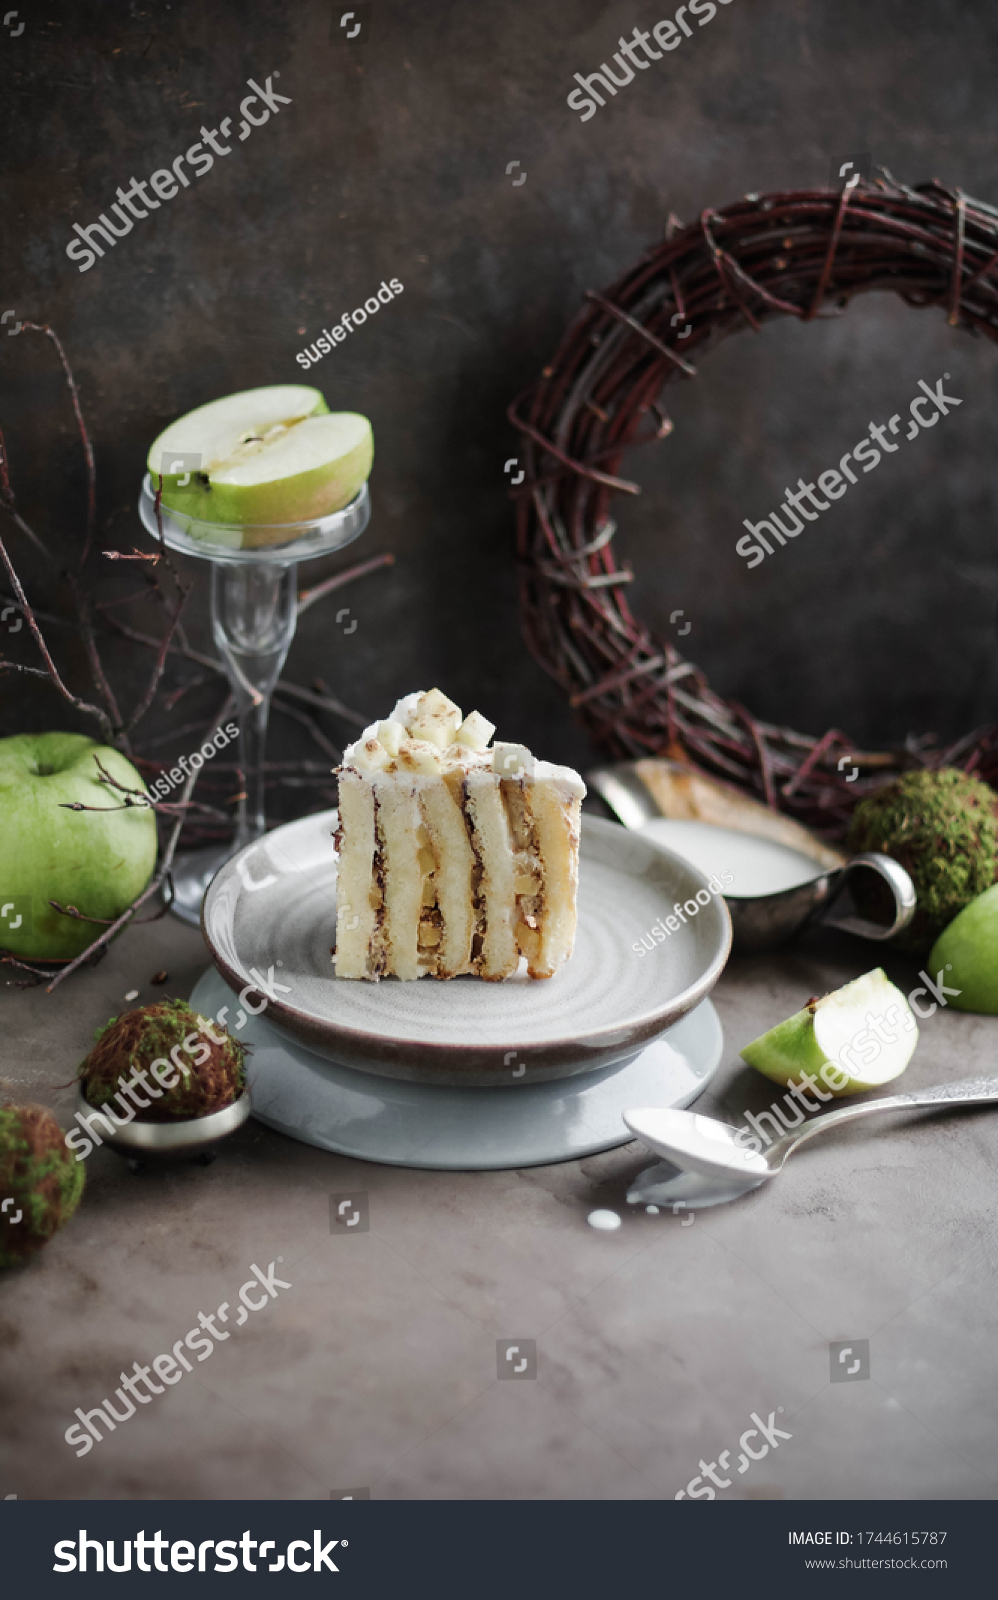 Slice of vertical biscuit cake with apple filling on a plate. Autumn desserts.  #1744615787